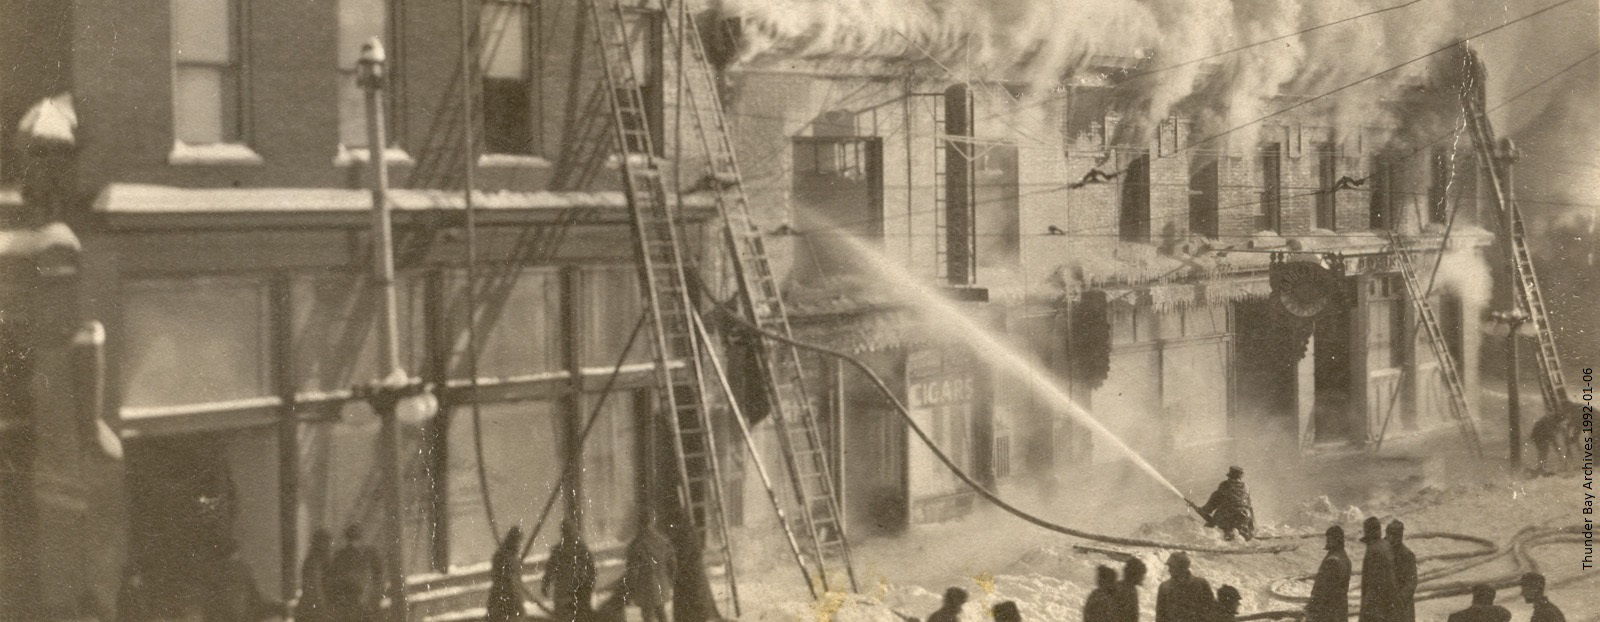 A group of firefighters extinguish a fire using ladders and hose